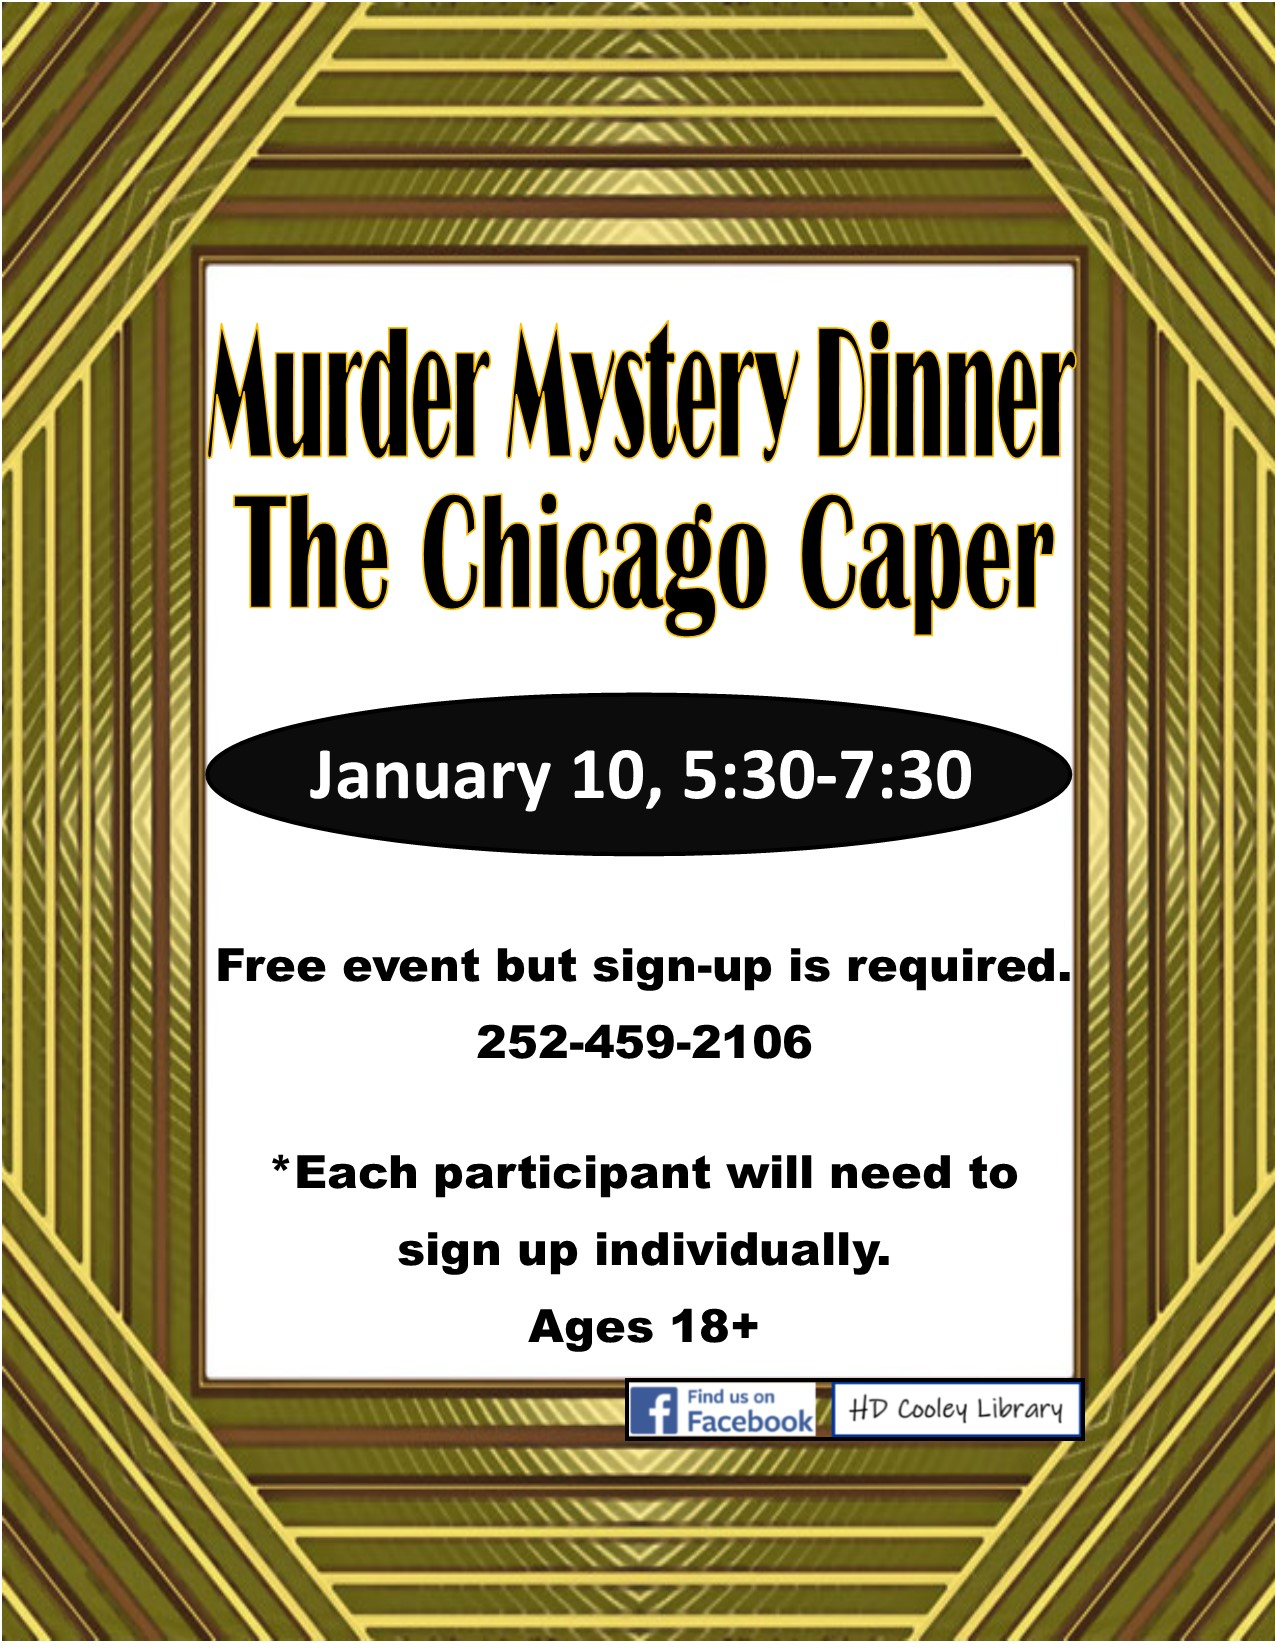 Murder Mystery Dinner Date and Time